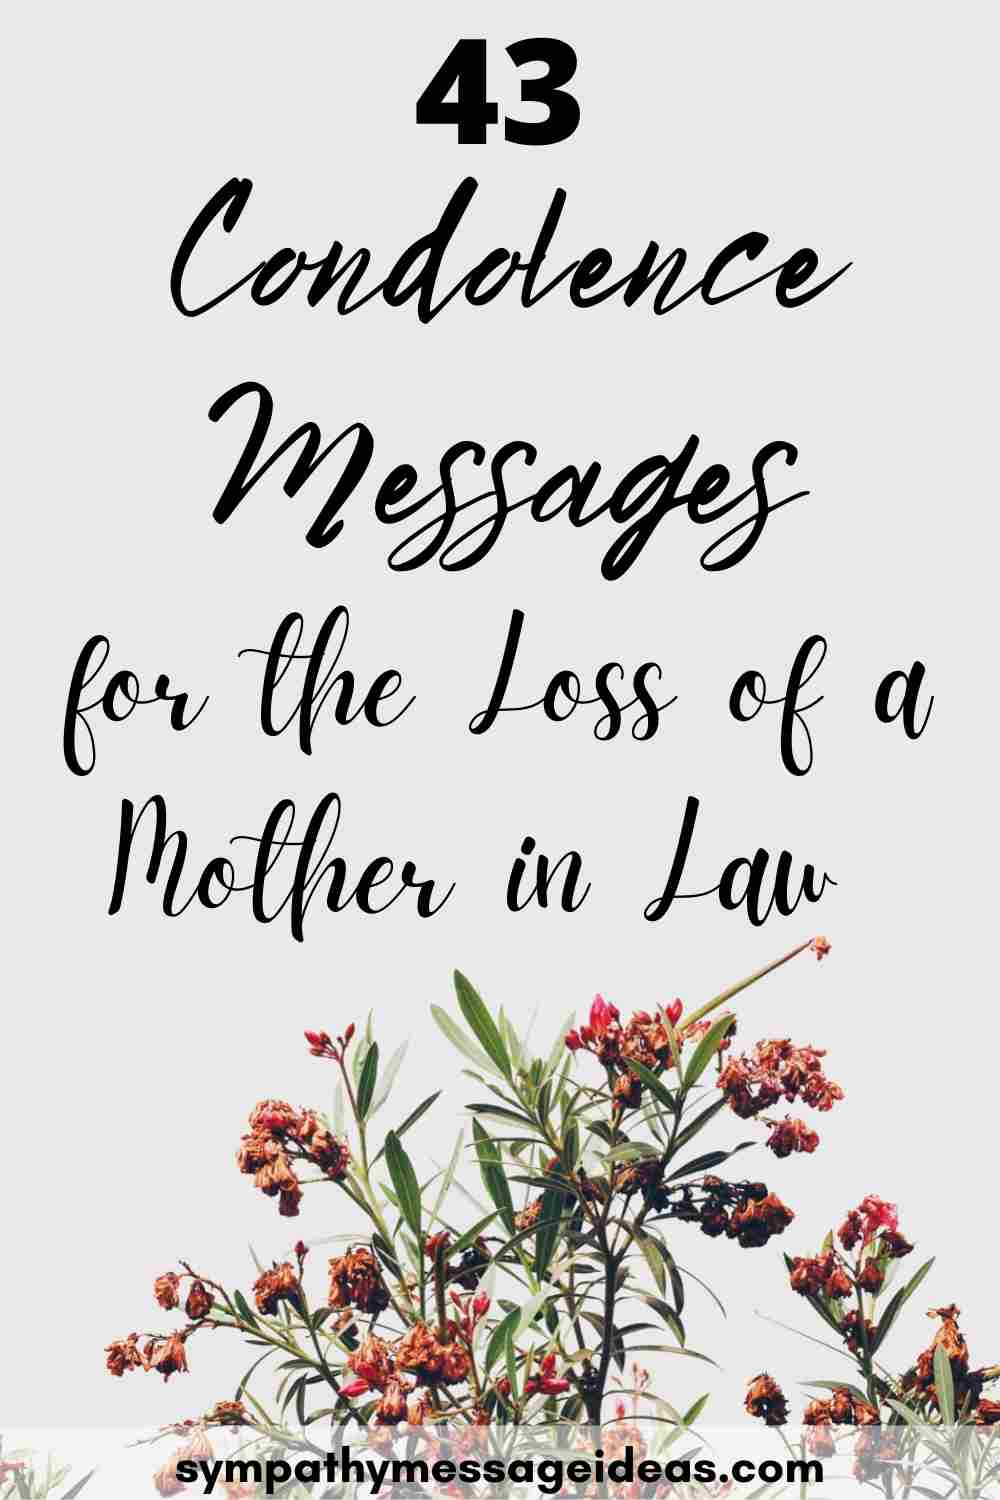 condolence messages for mother in law pinterest